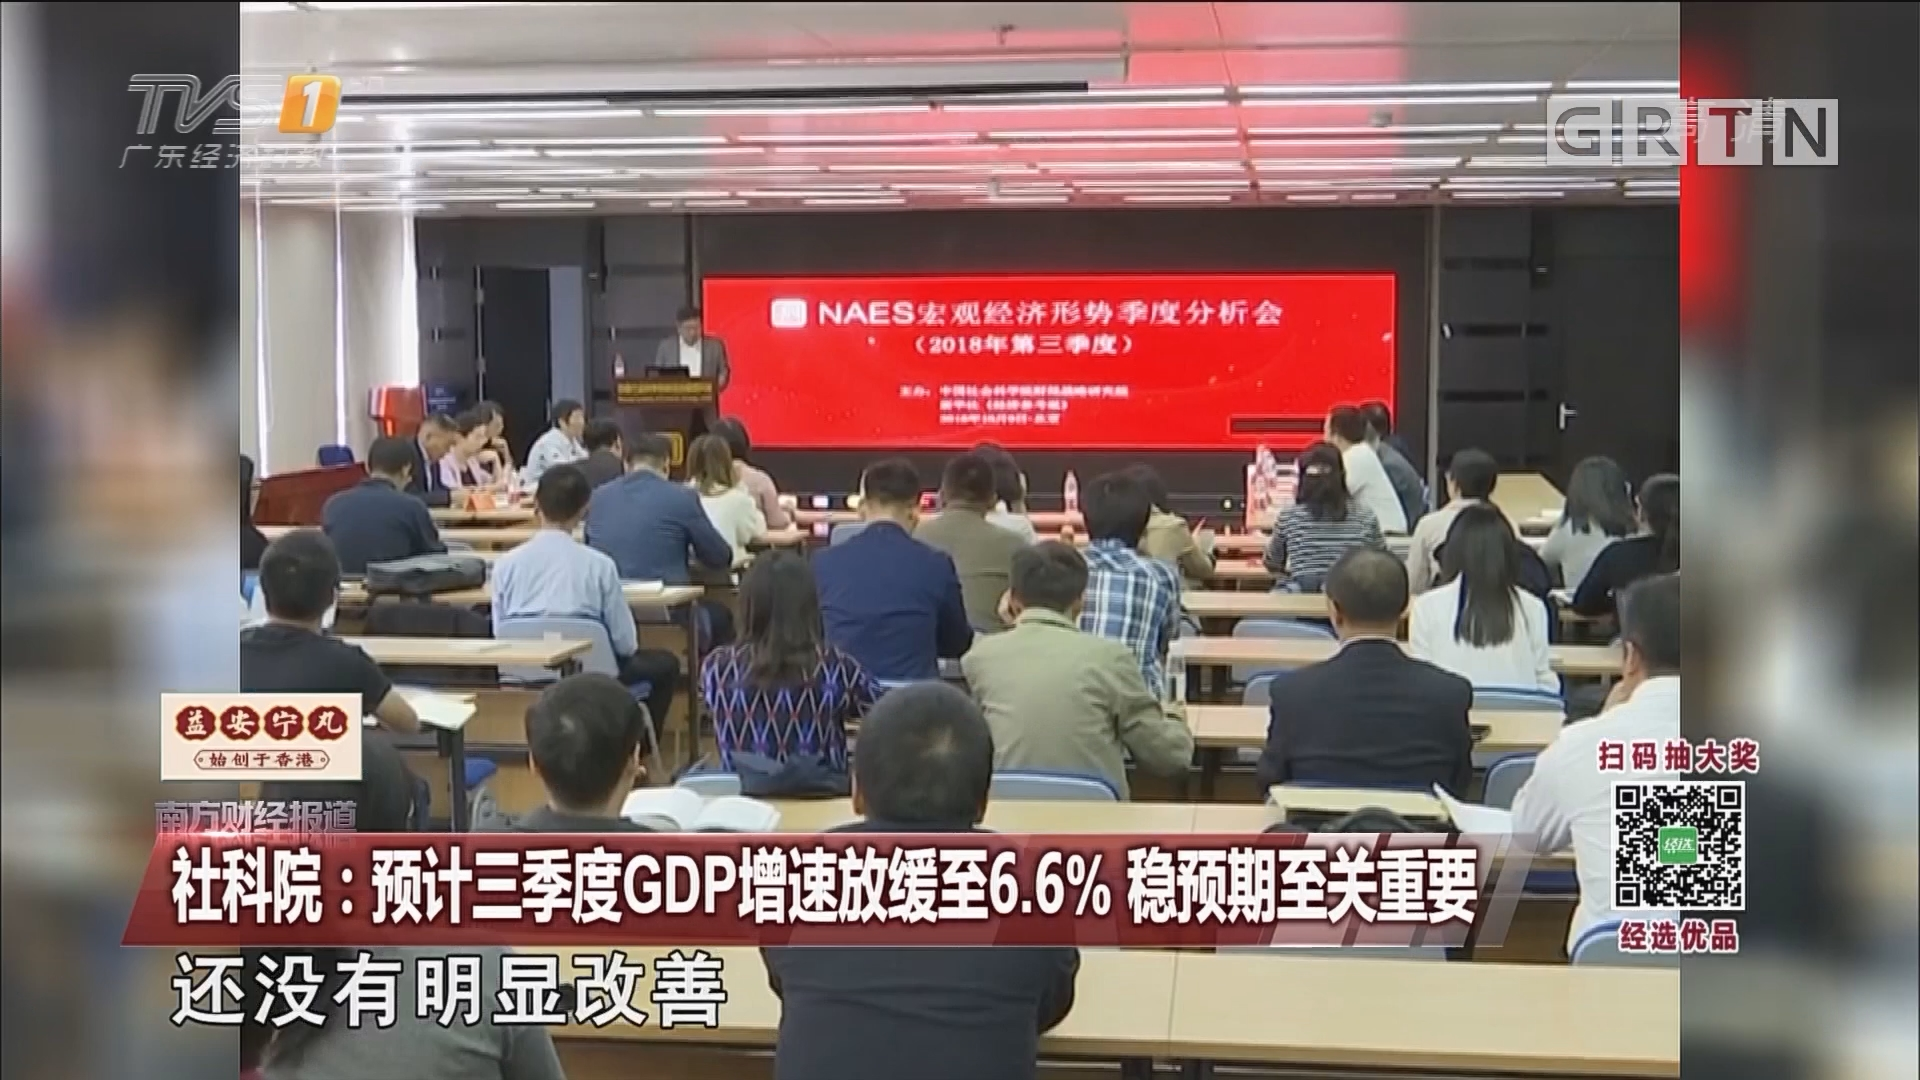 社科院:预计三季度GDP增速放缓至6.6% 稳预期至关重要